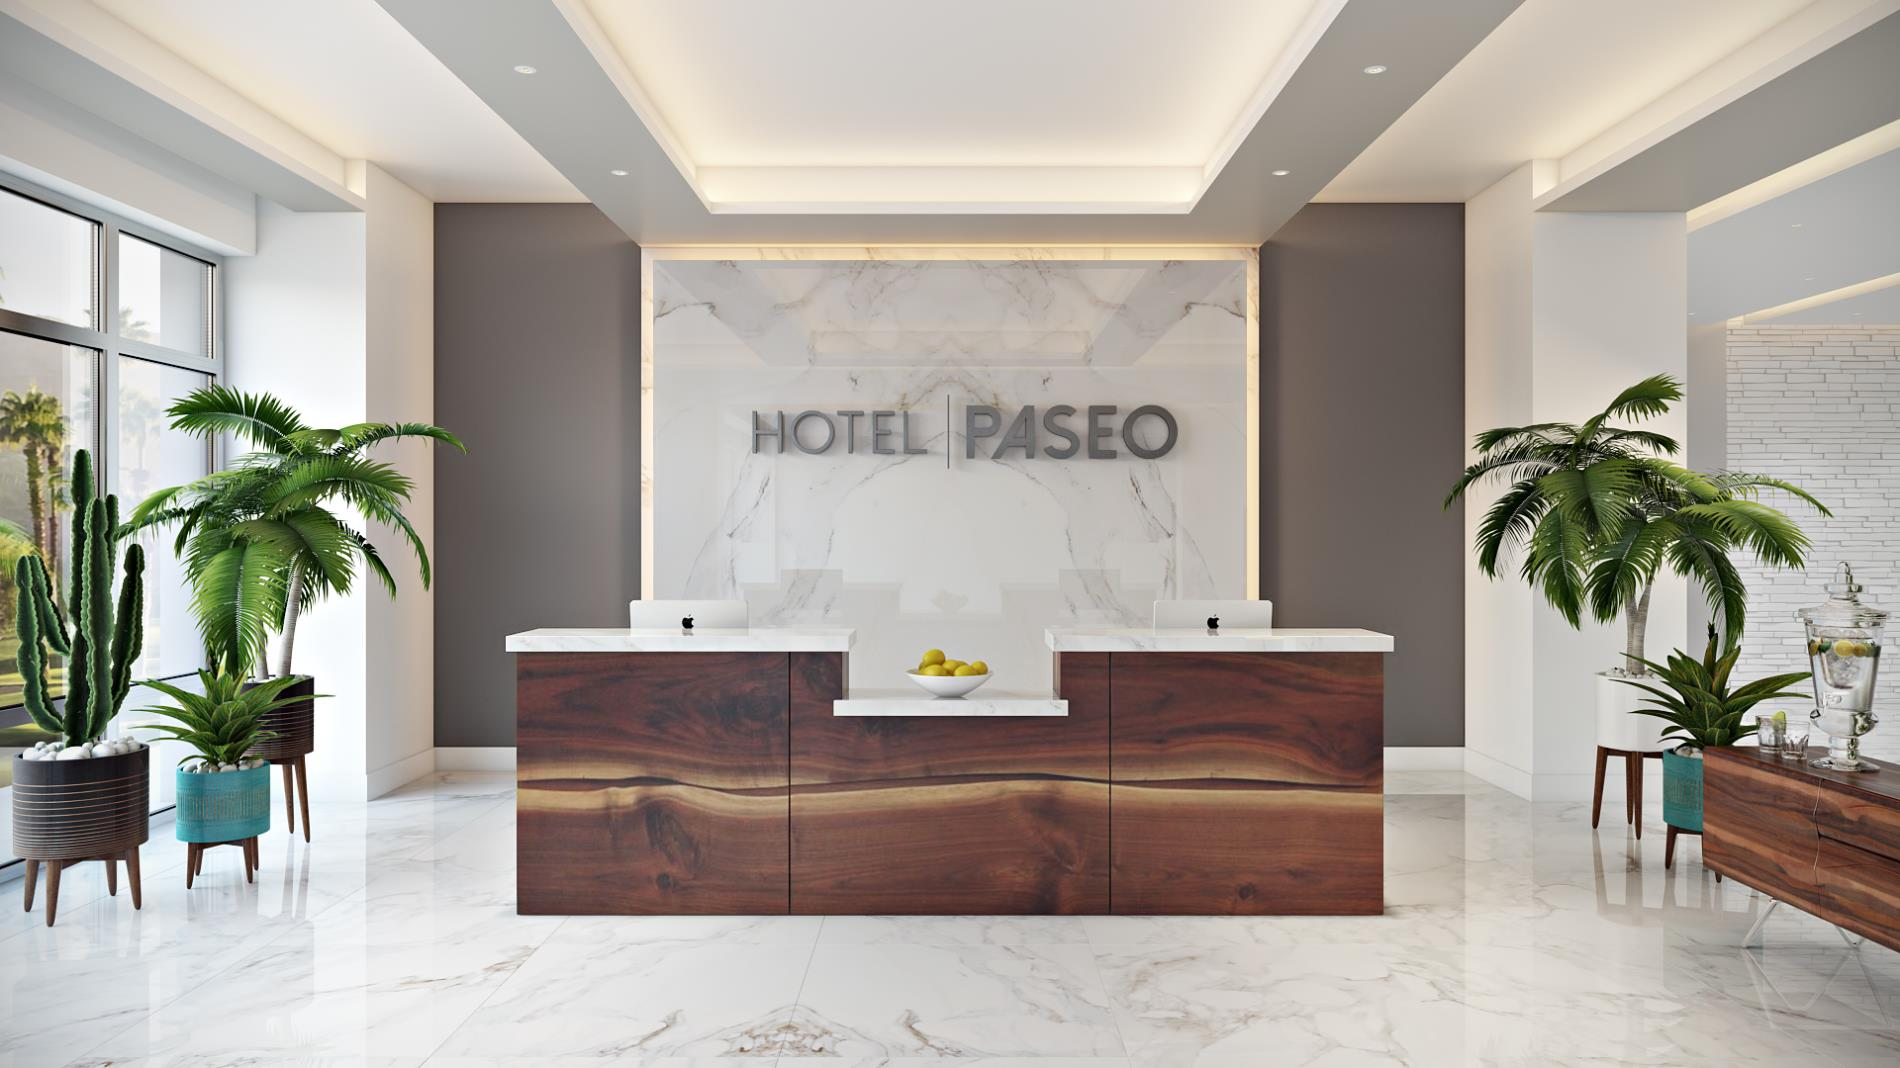 City of palm desert home hotel paseo lobby front desk sciox Images